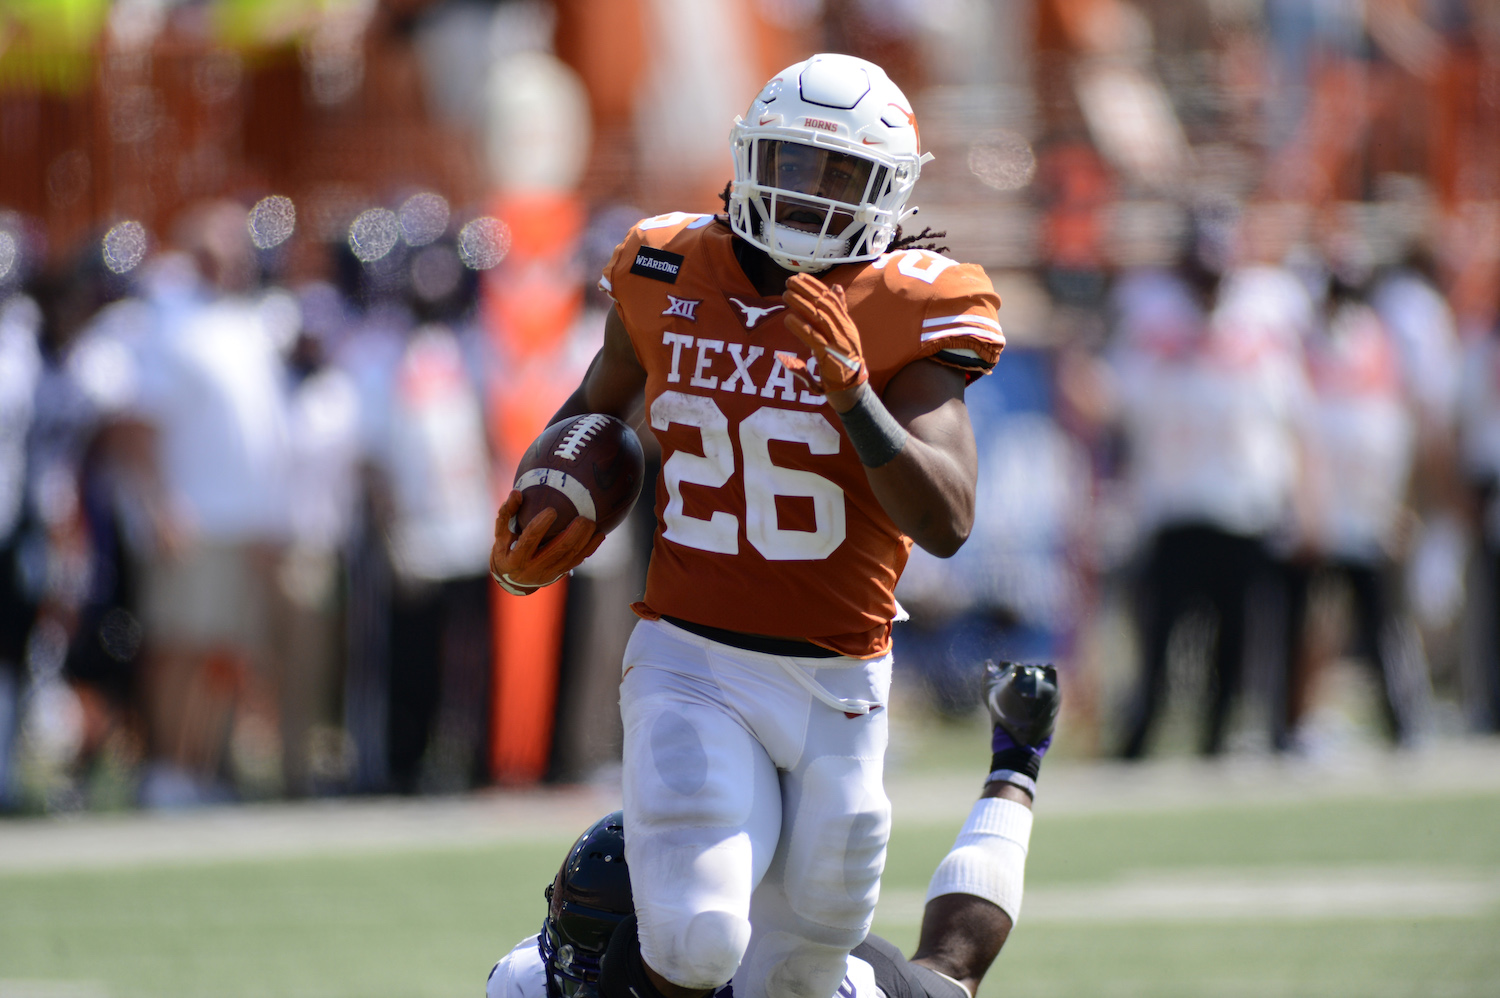 Texas Longhorns RB Keaontay Ingram doesn't want to play for Steve Sarkisian